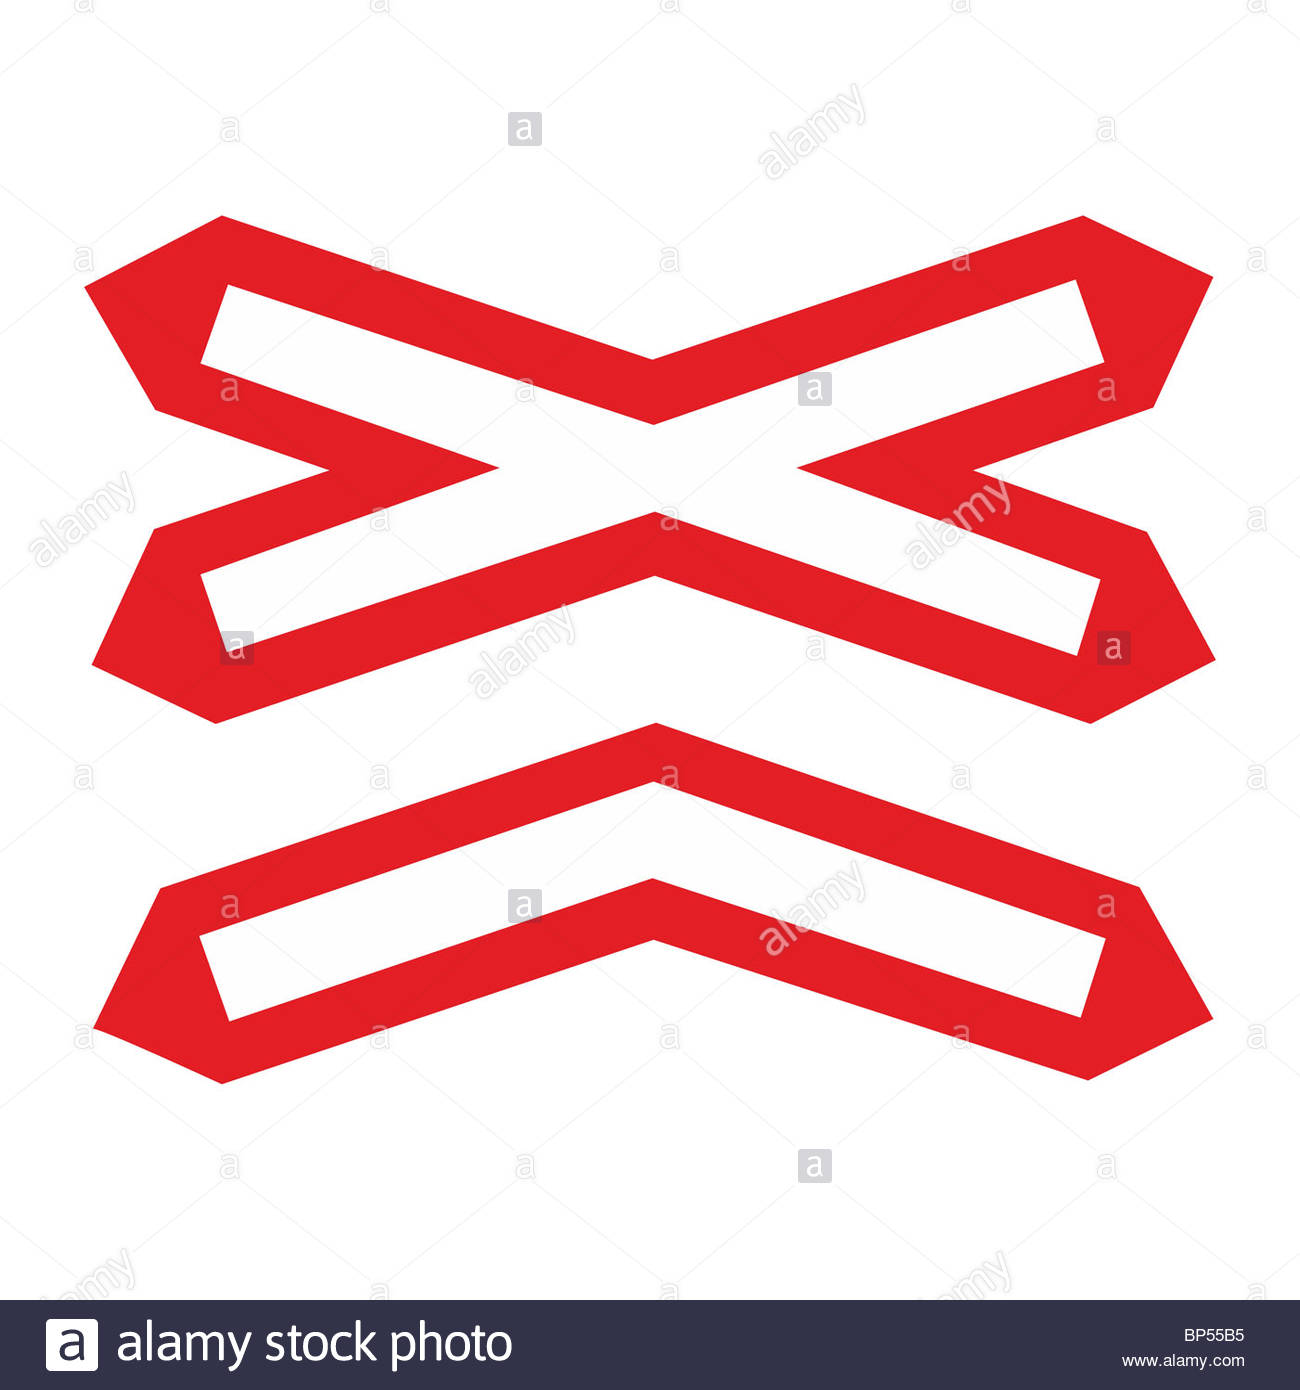 Ungated Level Crossing Sign Stock Photos & Ungated Level Crossing.